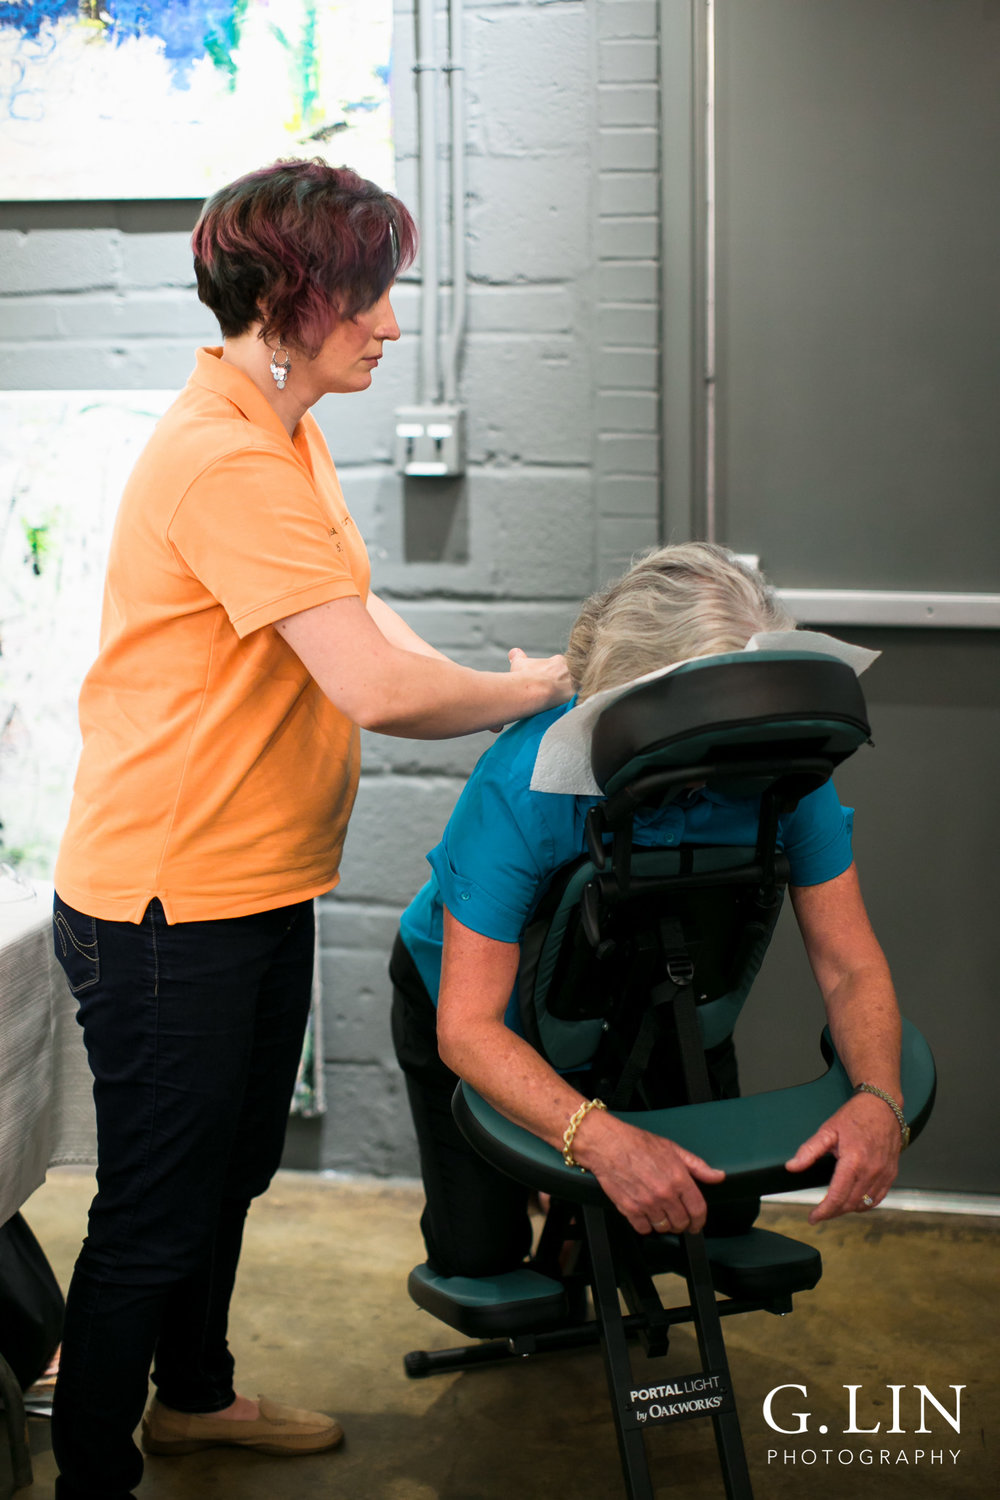 Raleigh Event Photographer | G. Lin Photography | Woman getting back massage on chair